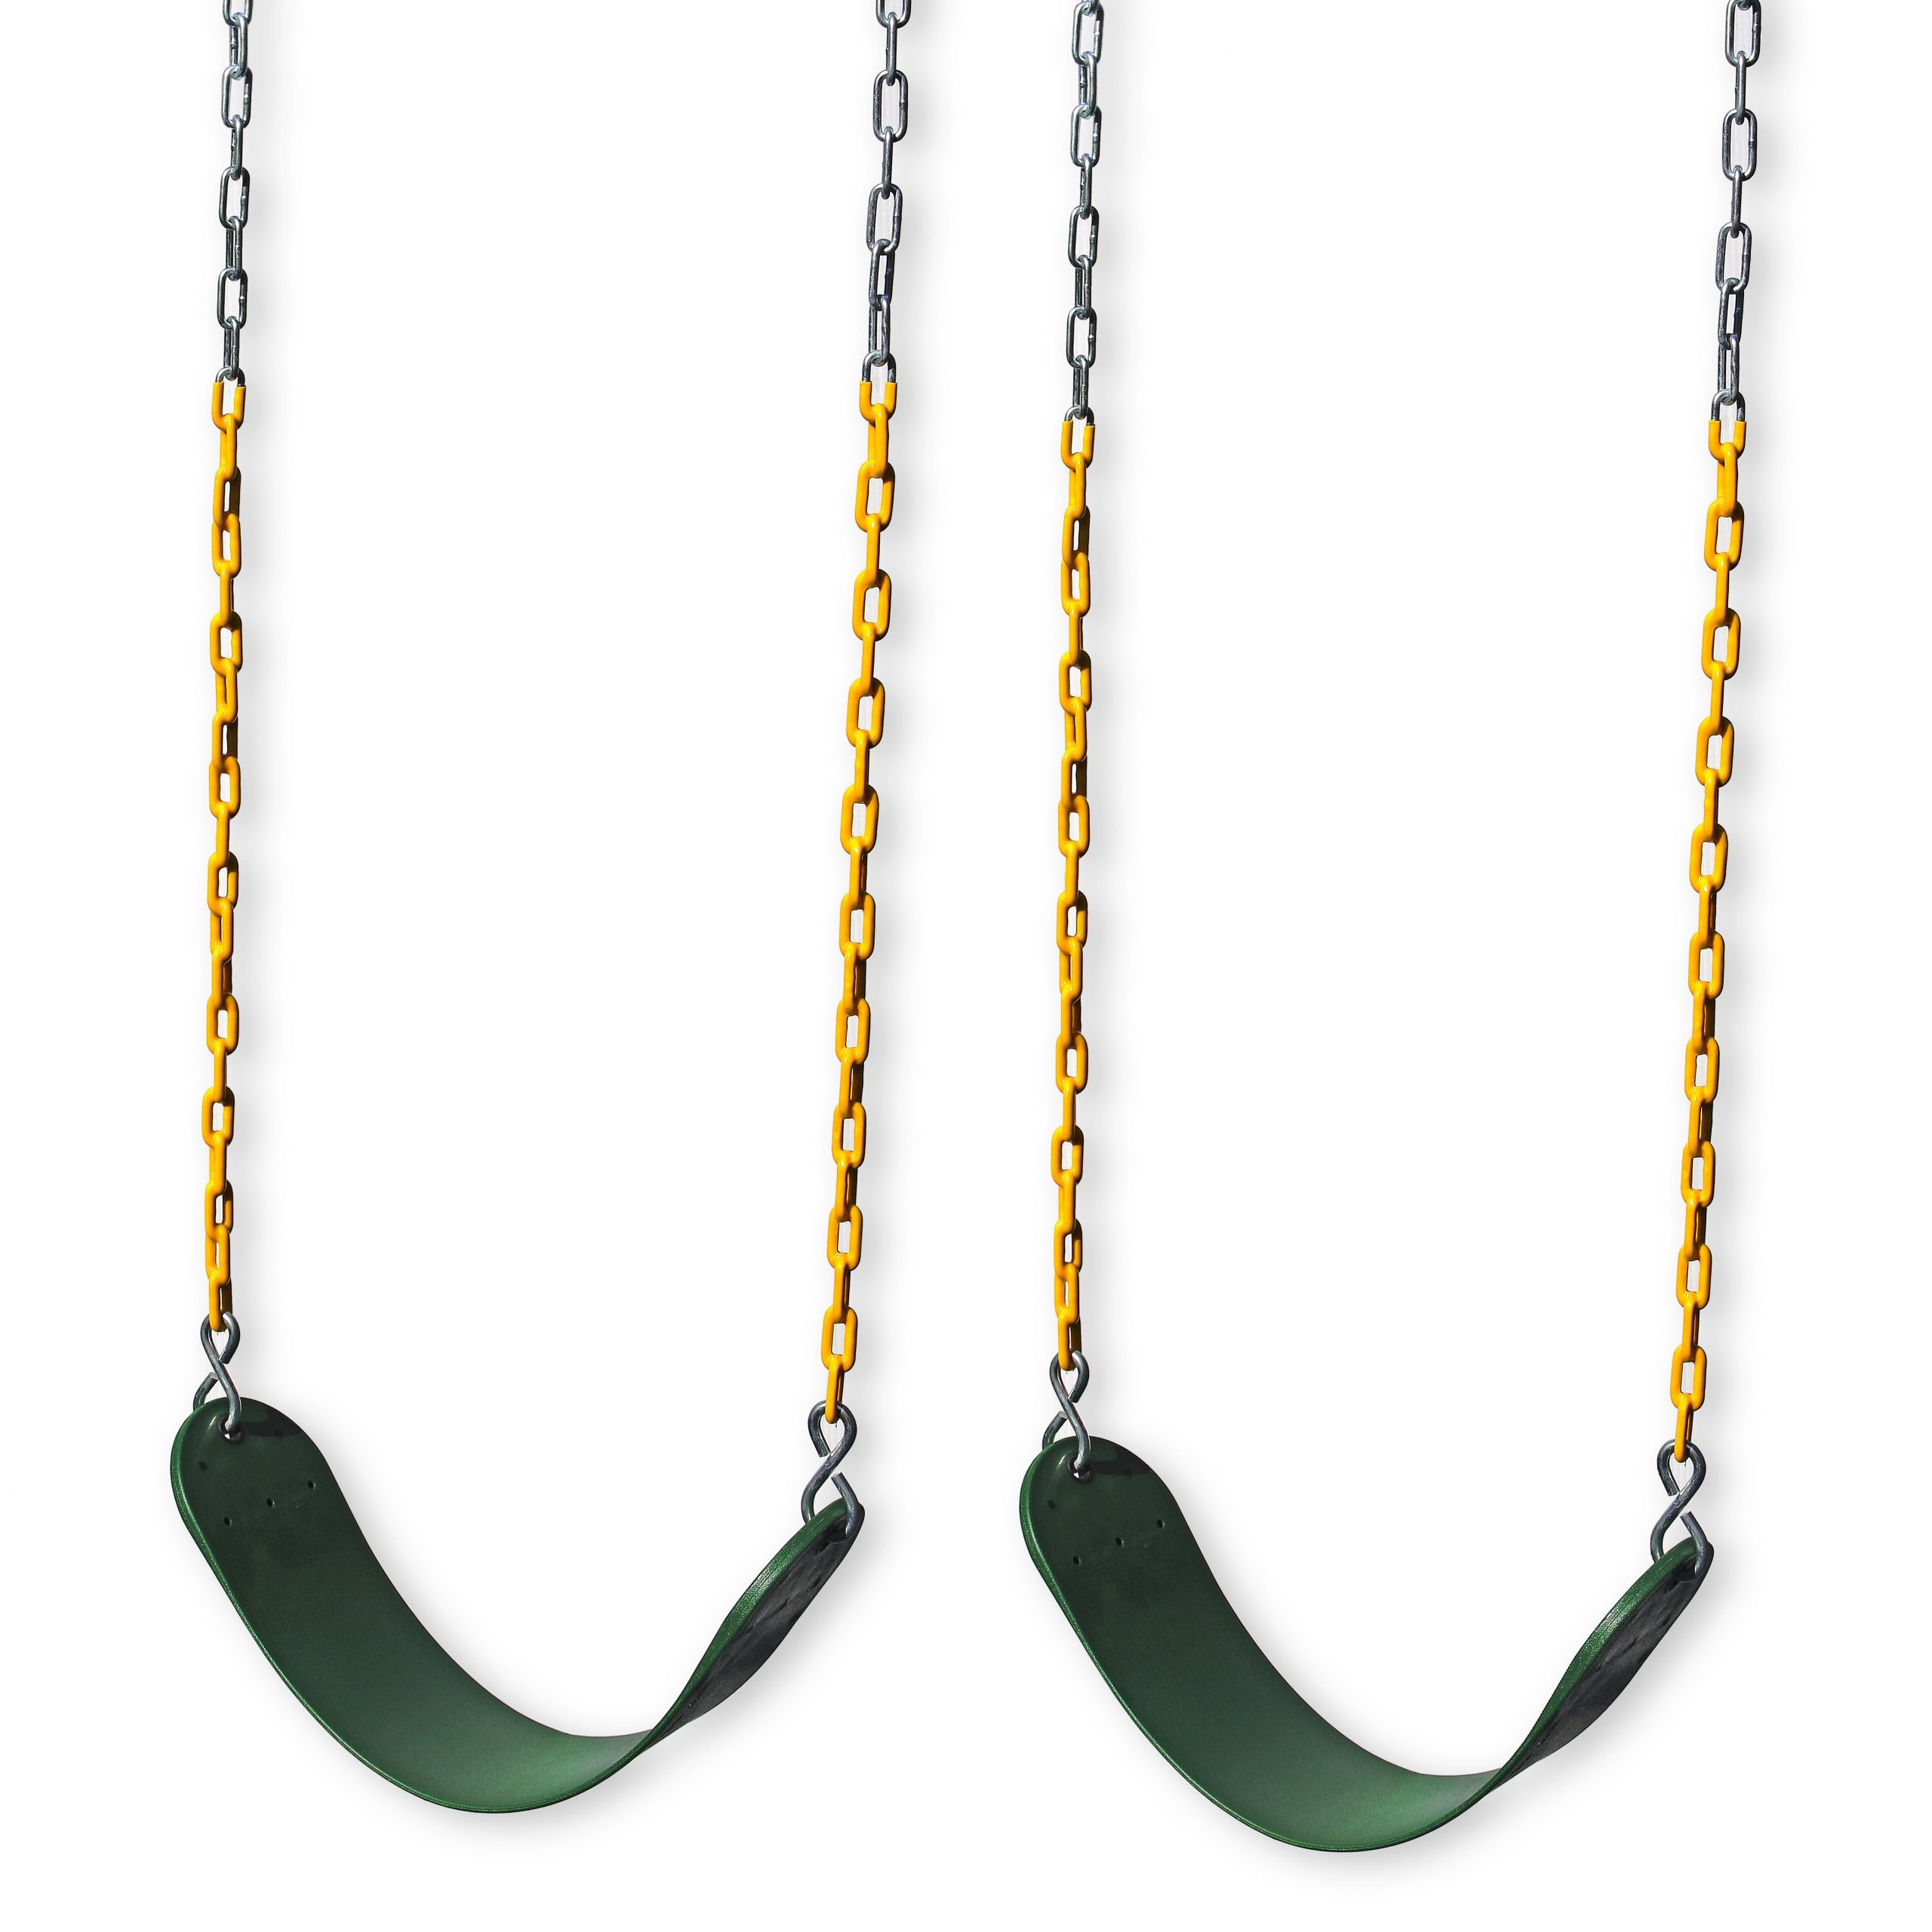 Eastern Jungle Gym Plastic Belt Swing With Chains And Hooks Pertaining To Favorite Swing Seats With Chains (View 6 of 30)